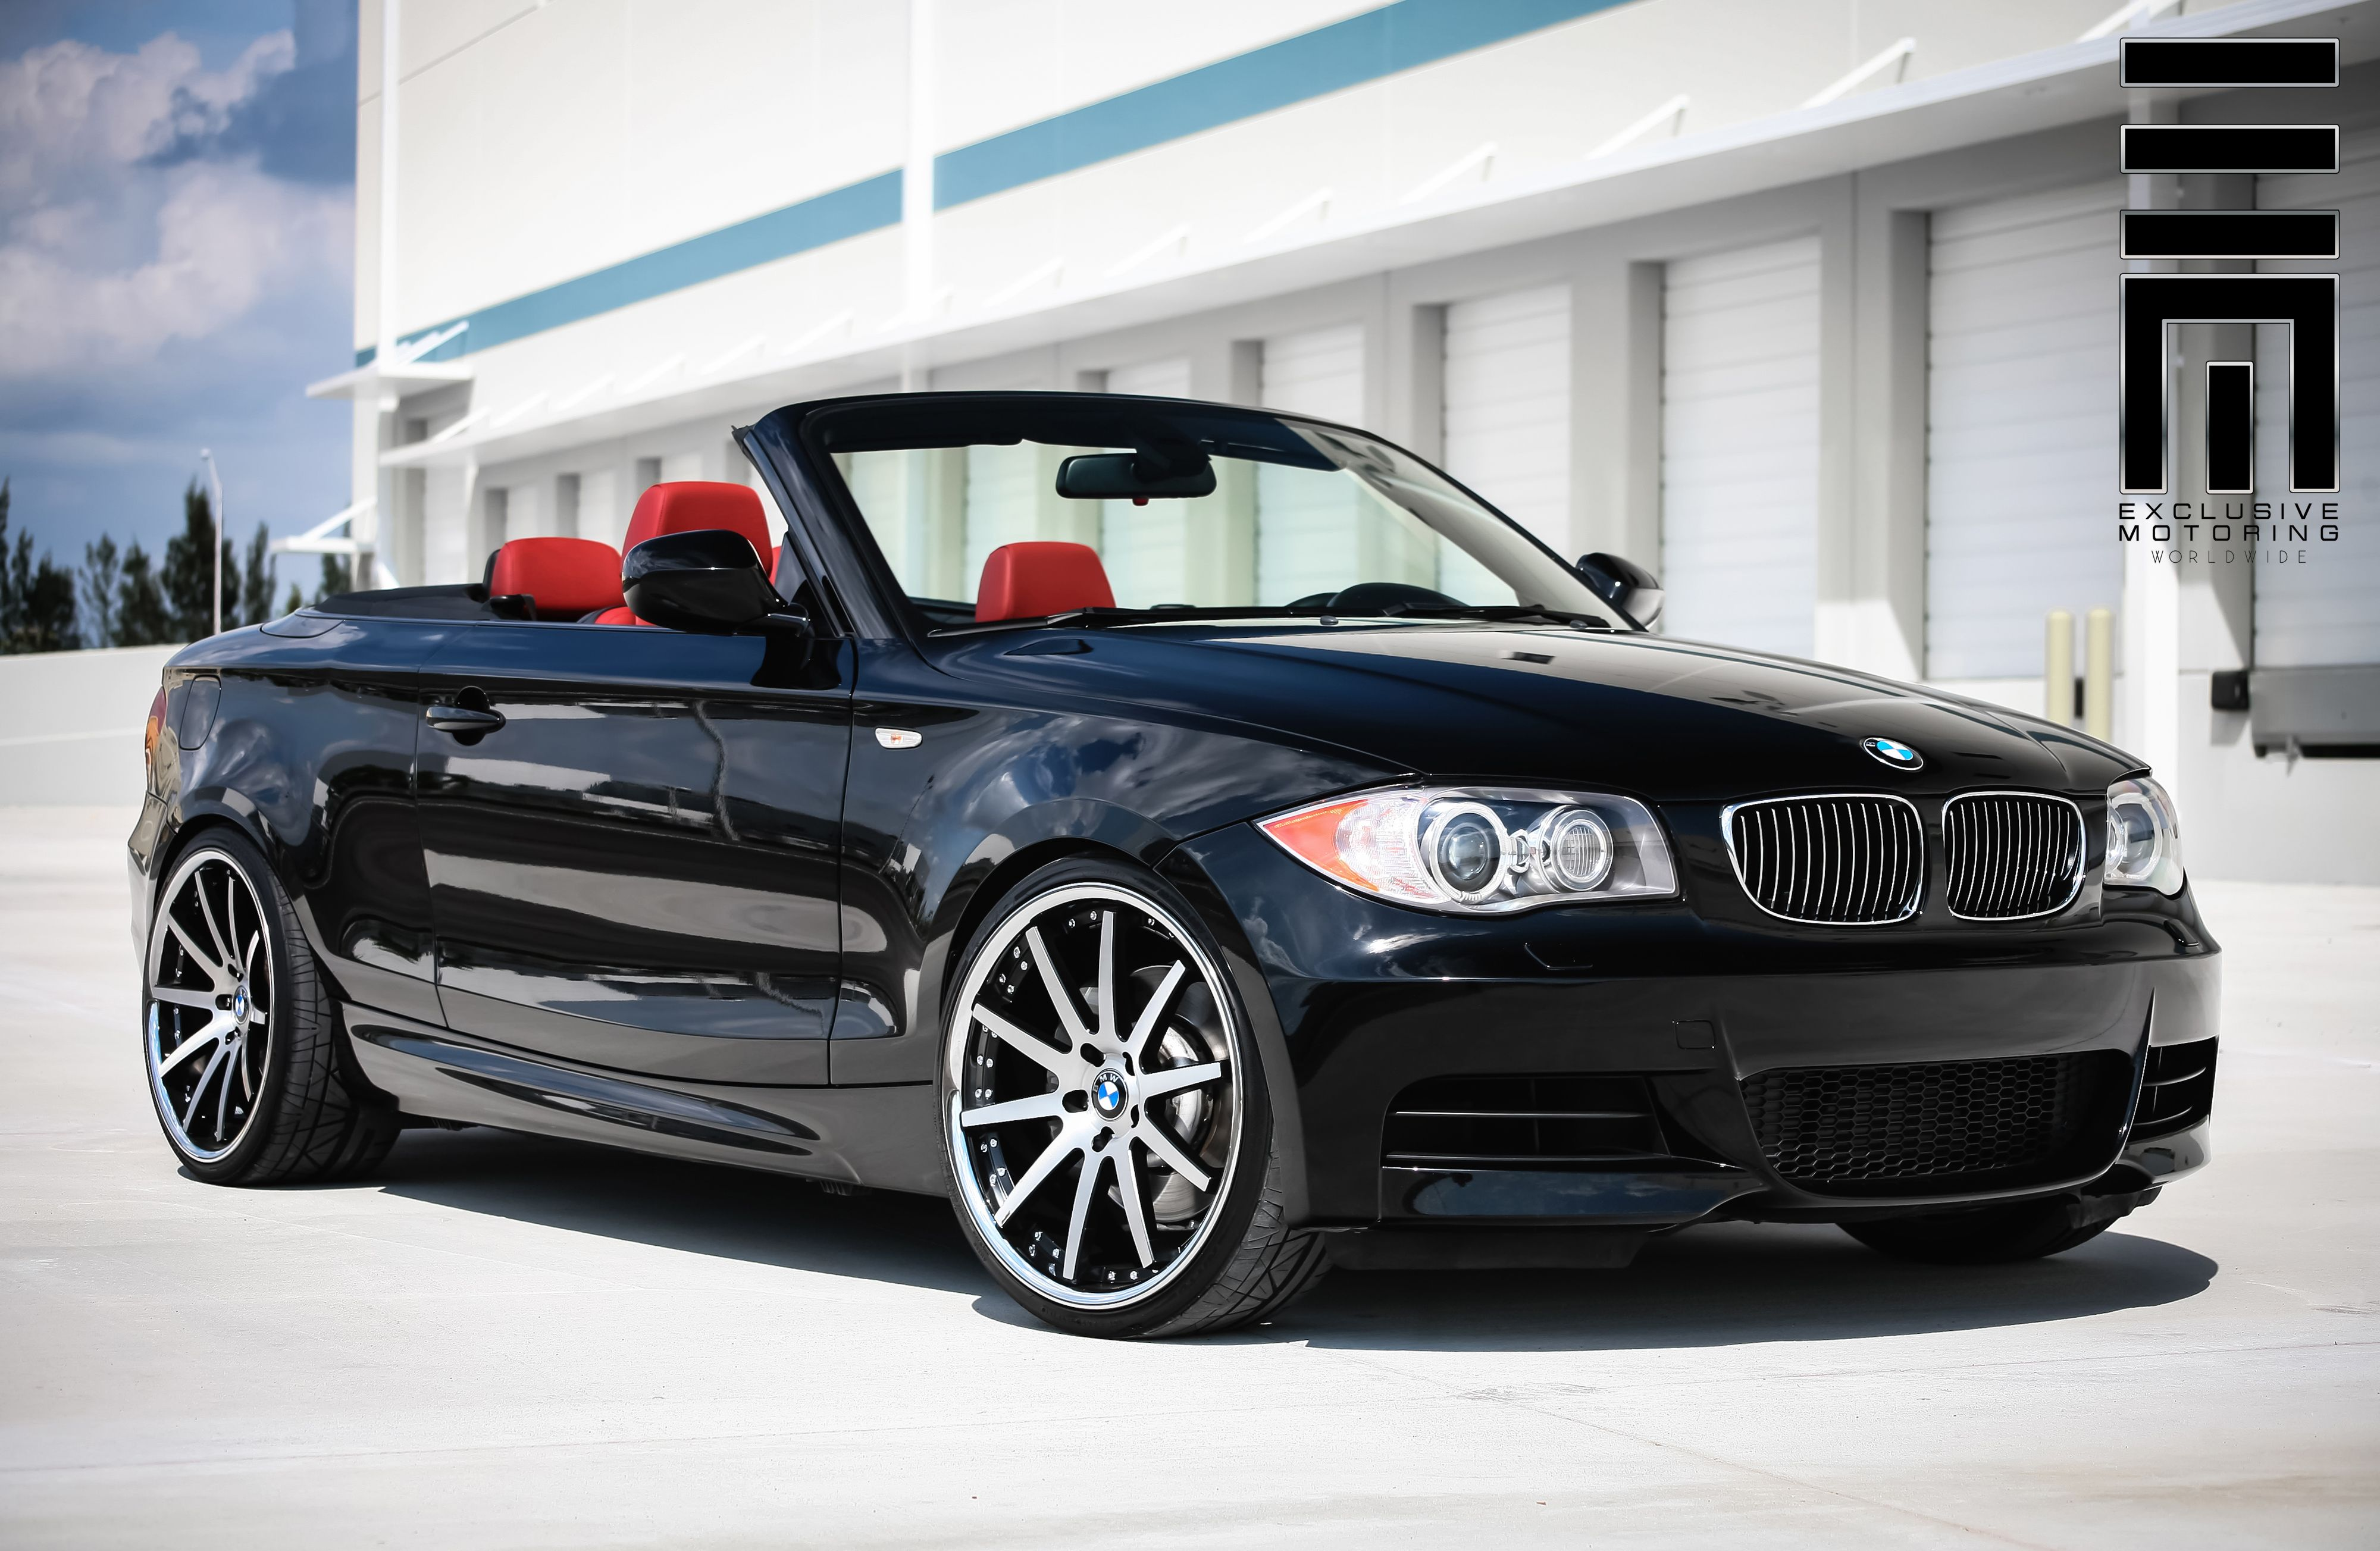 2013 Bmw 1 Series M On Xo Luxury Paris Wheels Done By Exclusive Motoring Bmw 1 Series Bmw Bmw Cars 2013 bmw 1 series m coupe by